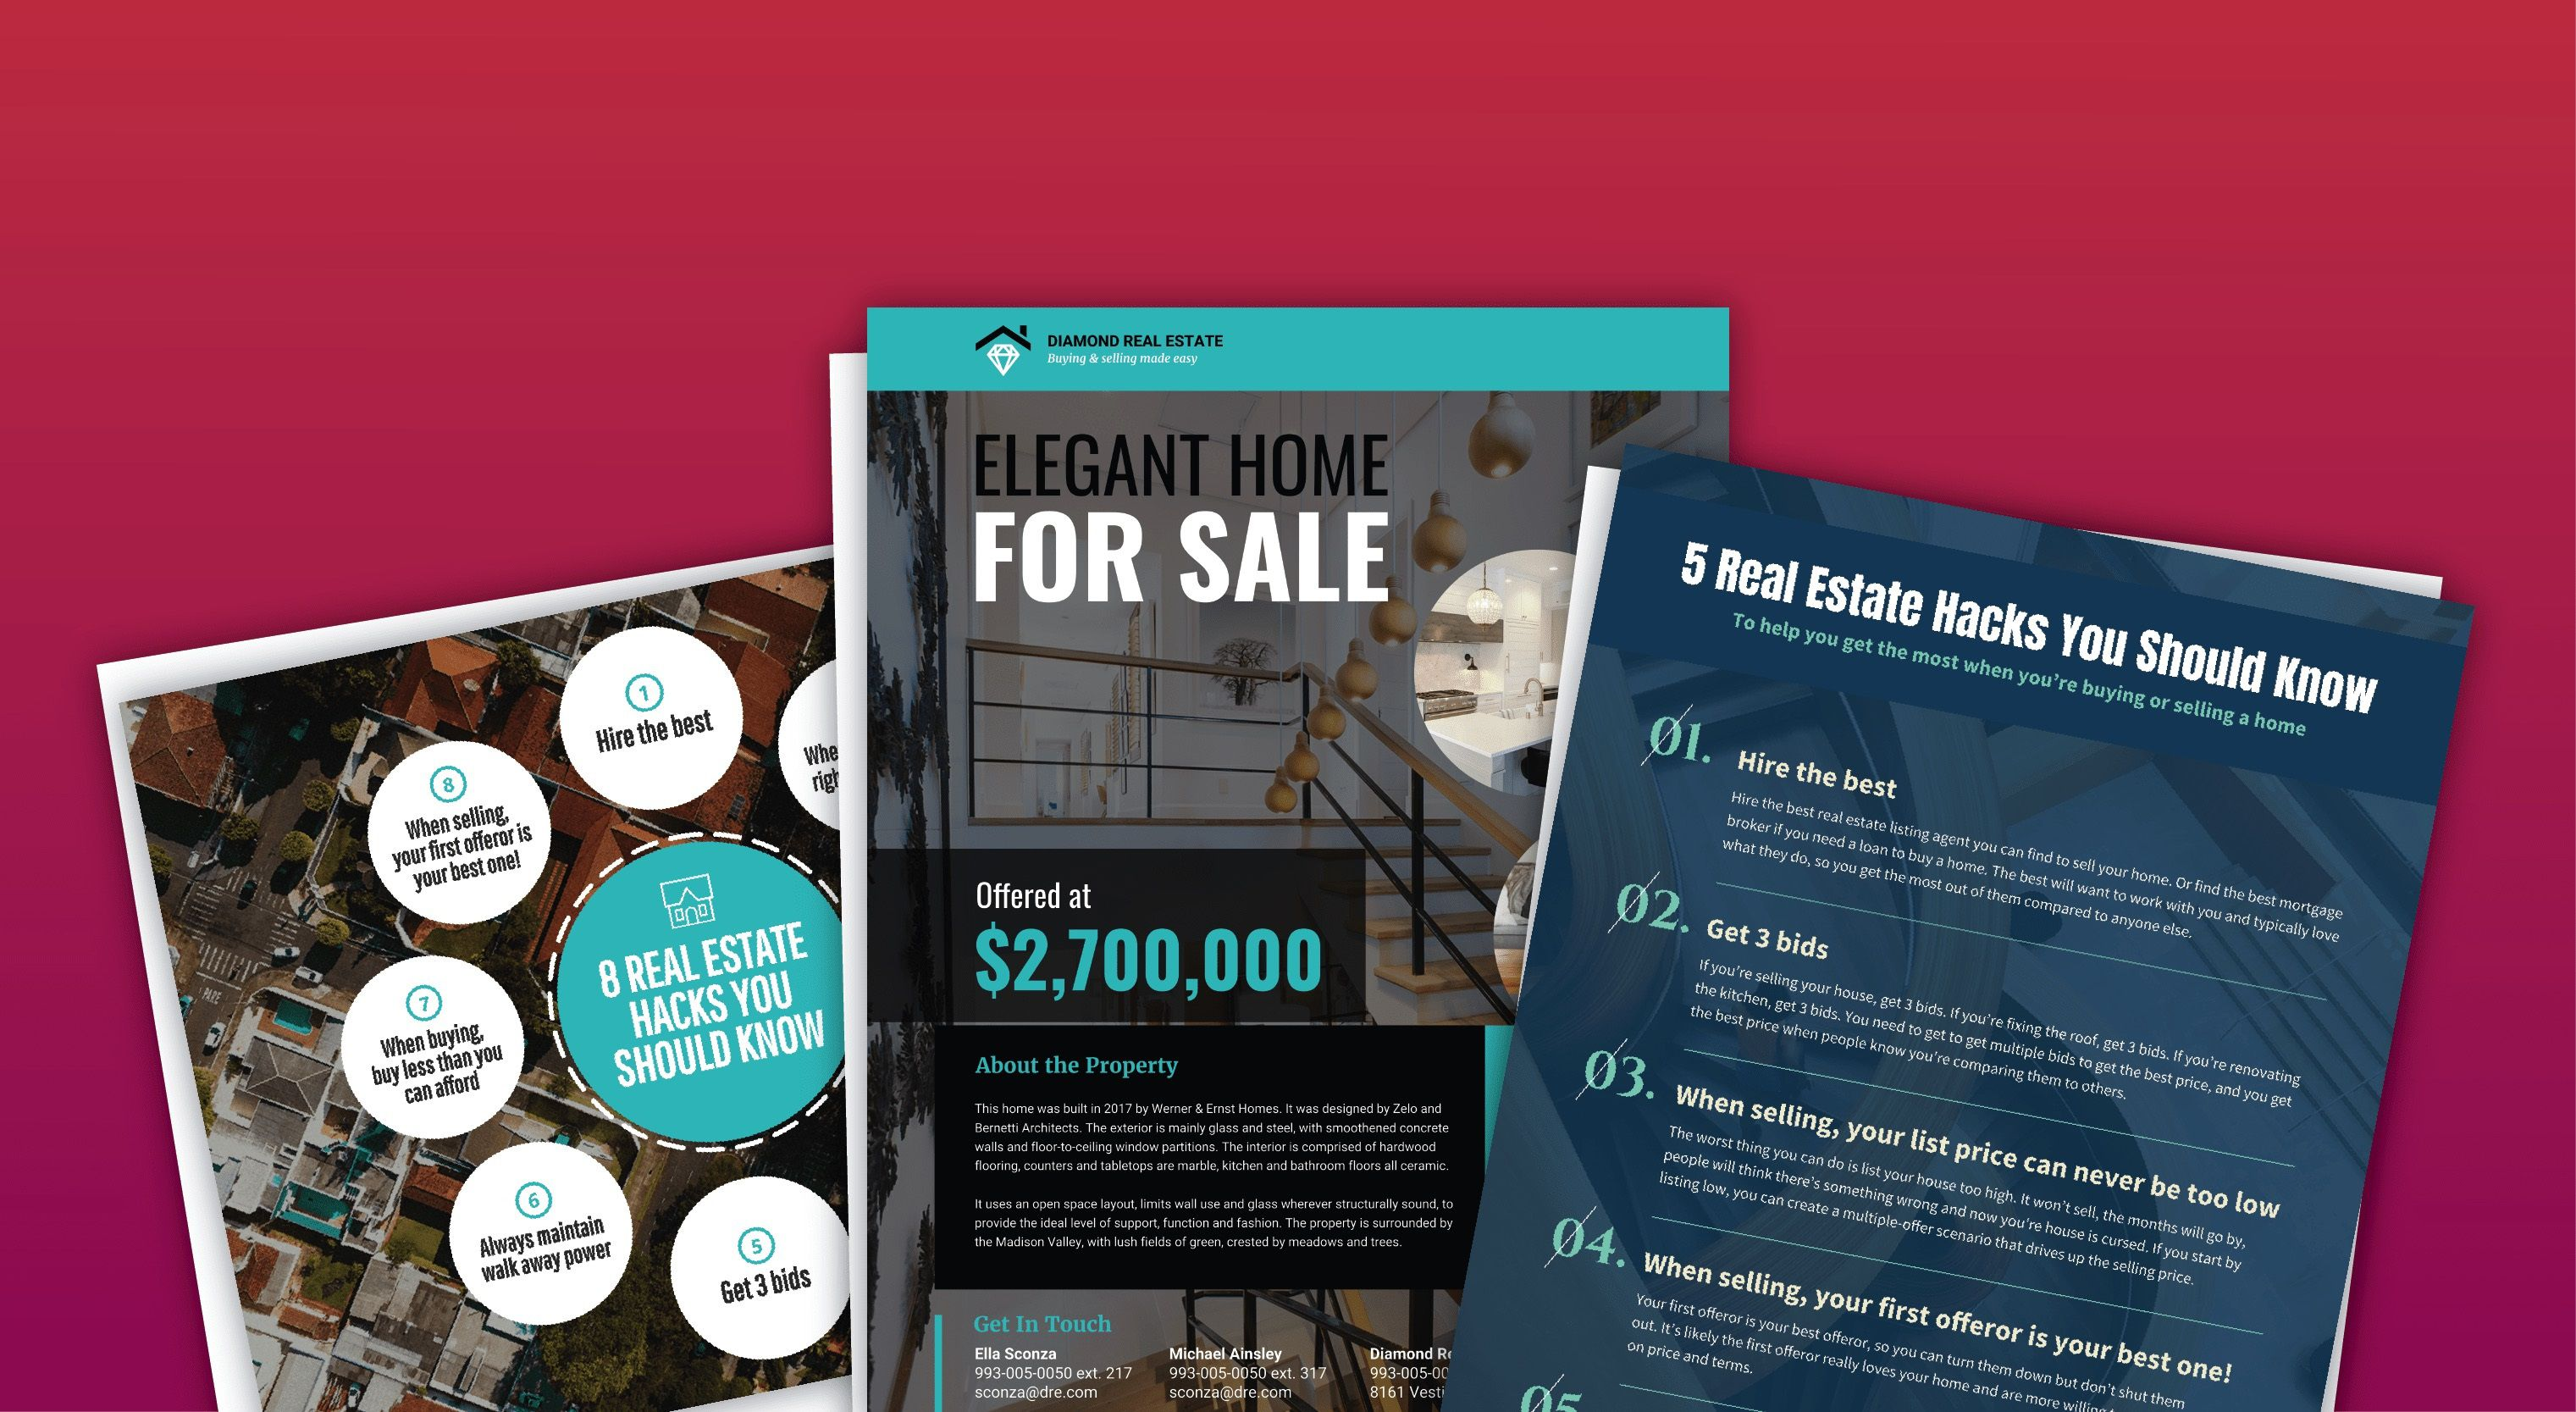 006 Simple Real Estate Marketing Video Template Highest Quality  TemplatesFull